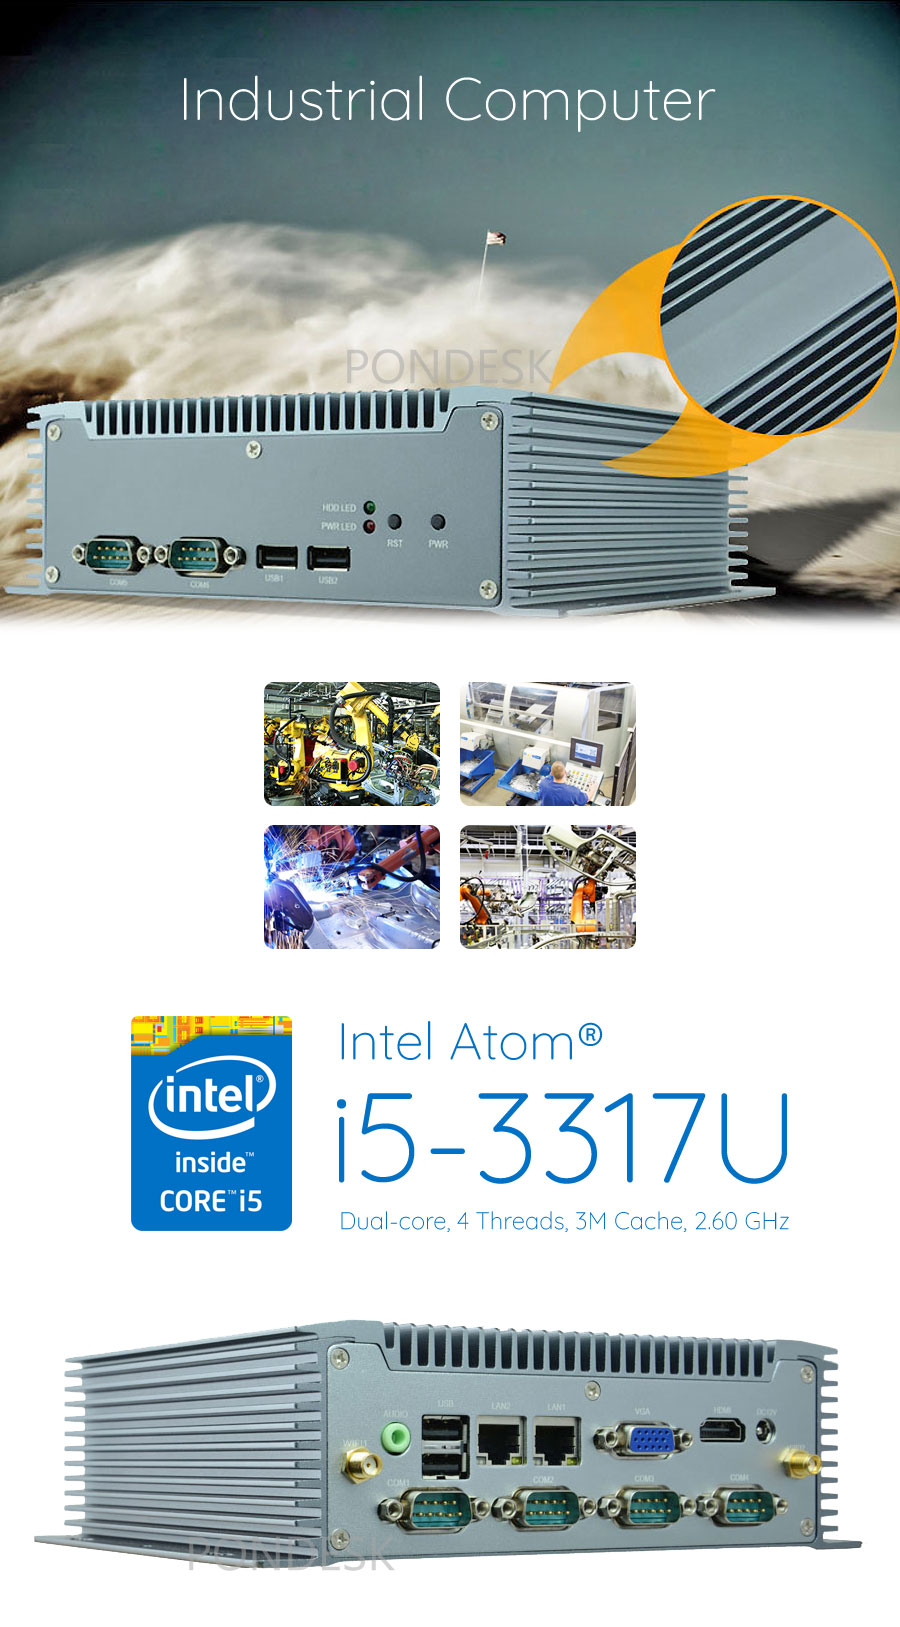 Intel® i5-3317U 2.60GHz HD 6 COM 2 LAN Fanless Industrial PC - MNHO-065 | Image